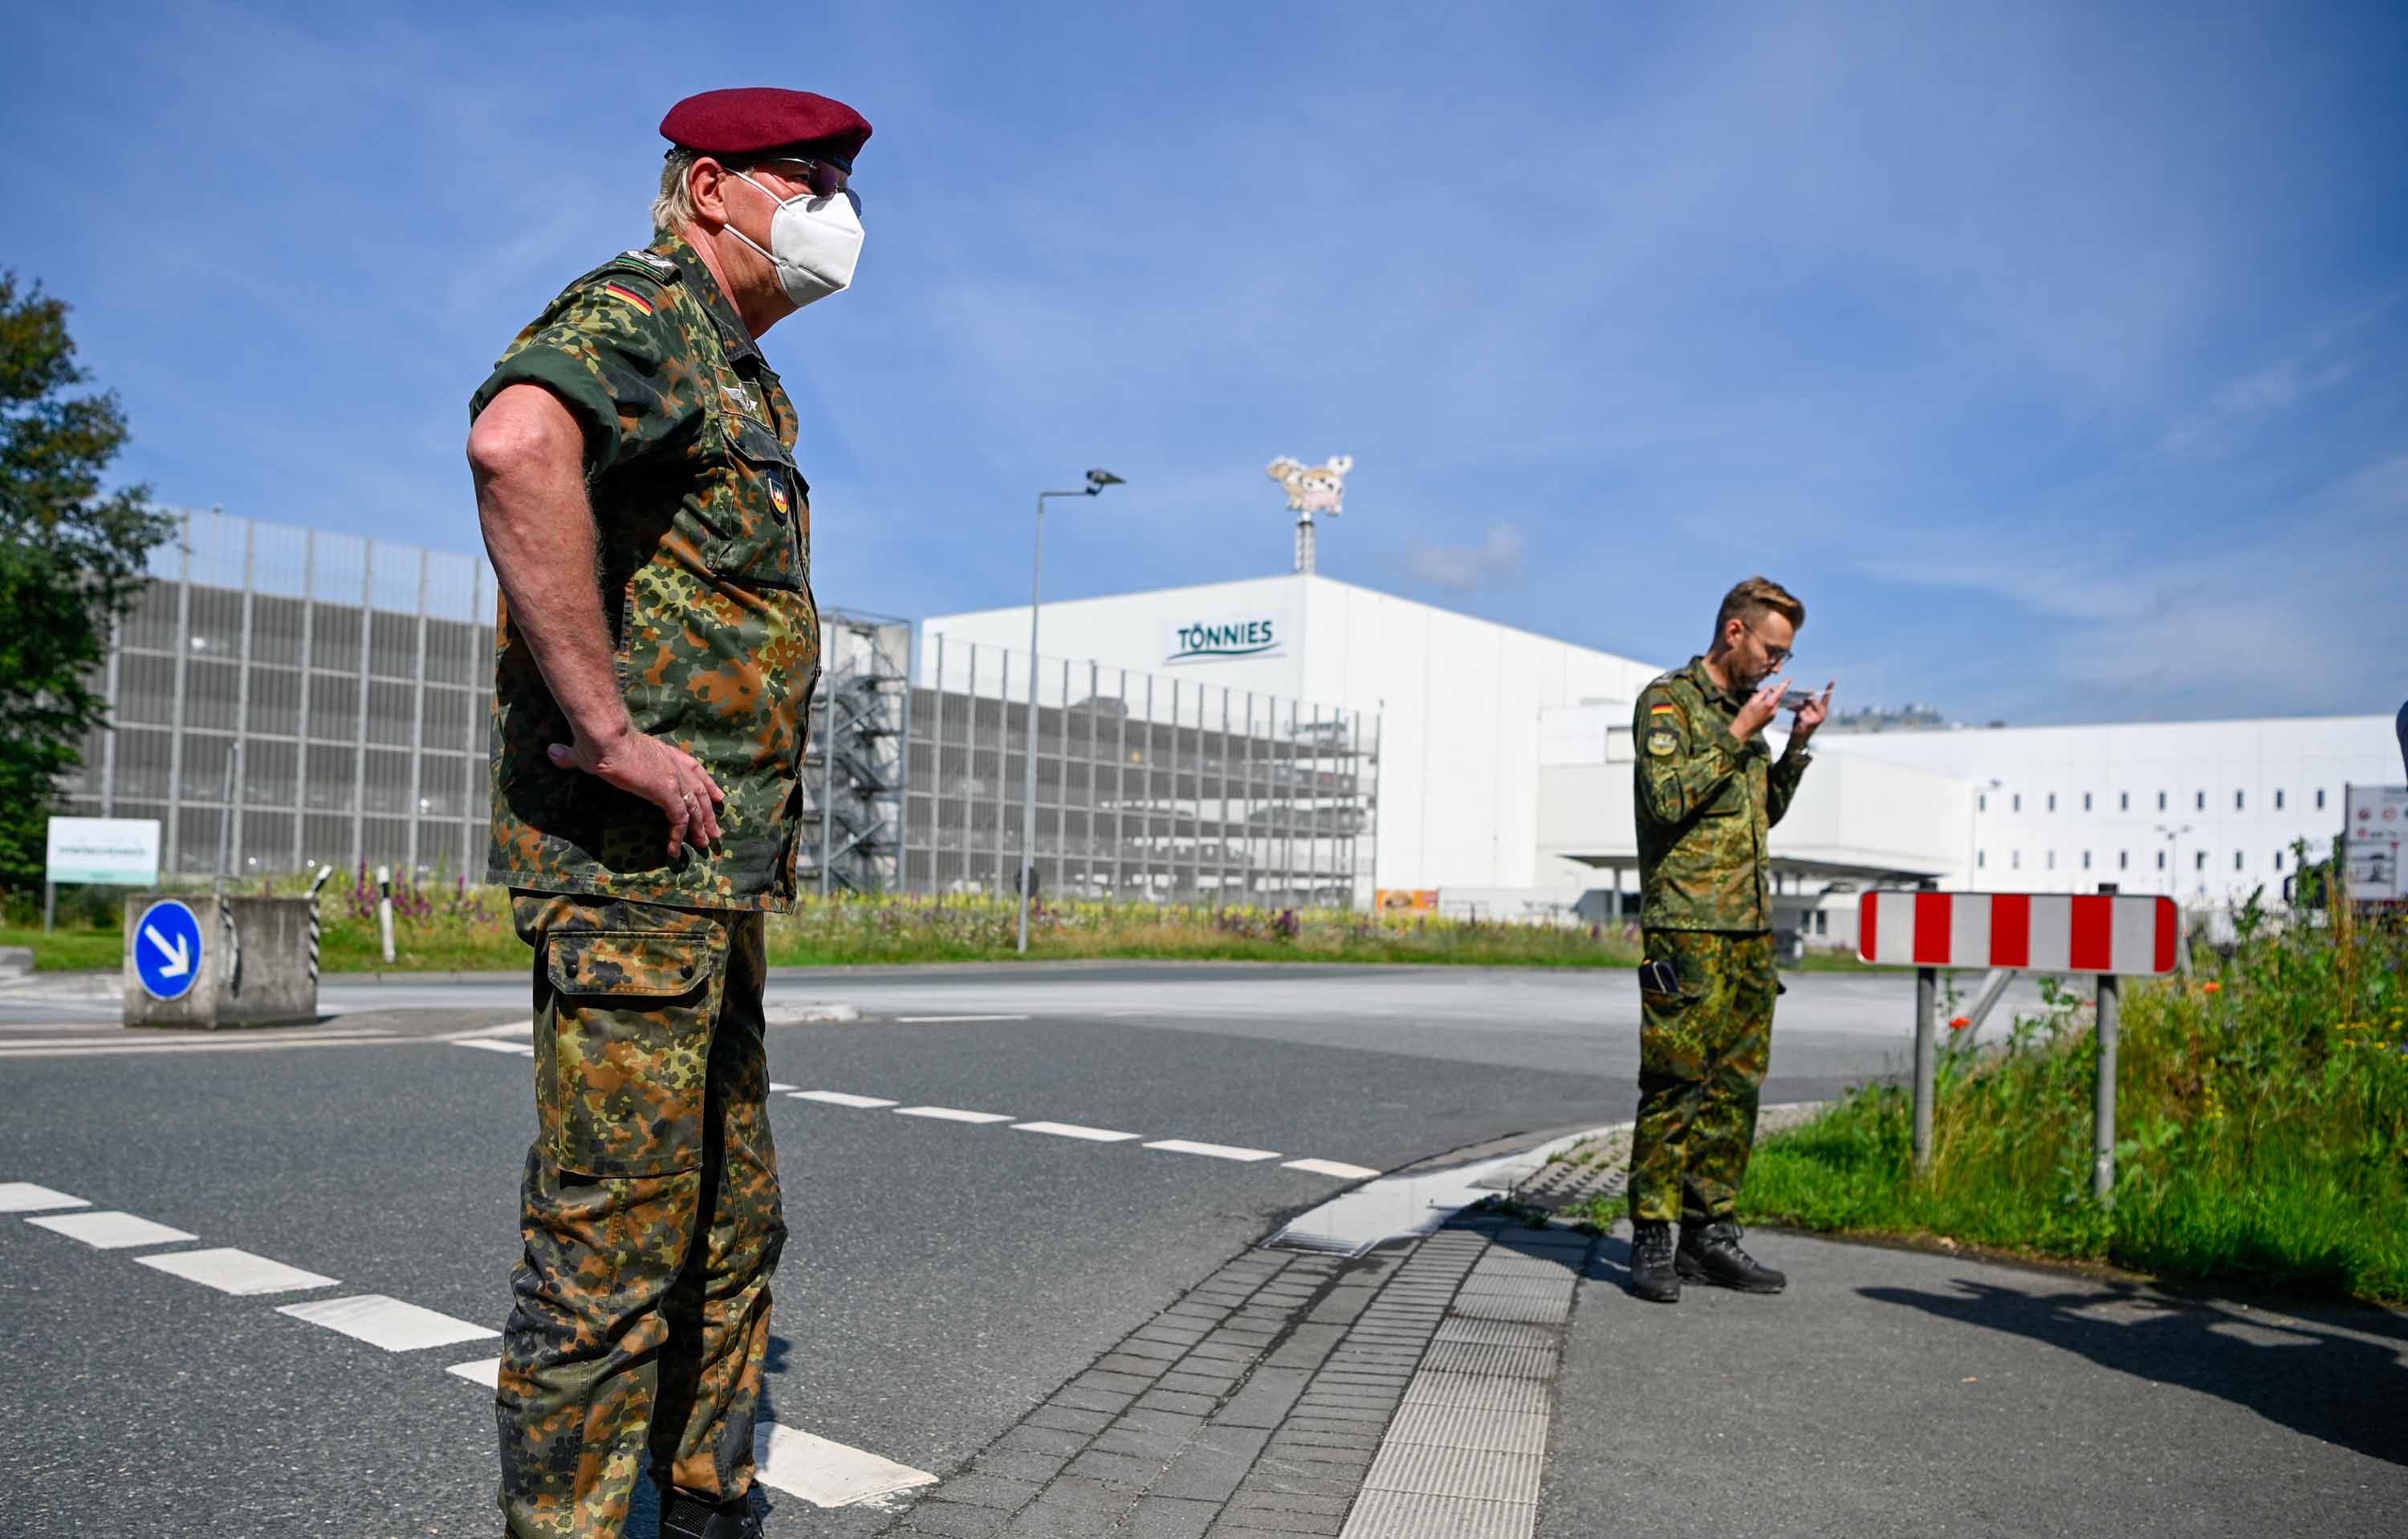 Members of the German armed forces prepare to help with taking throat swab samples for Covid-19 testing of employees at the Toennies meat packing plant in Guetersloh, Germany on June 19.